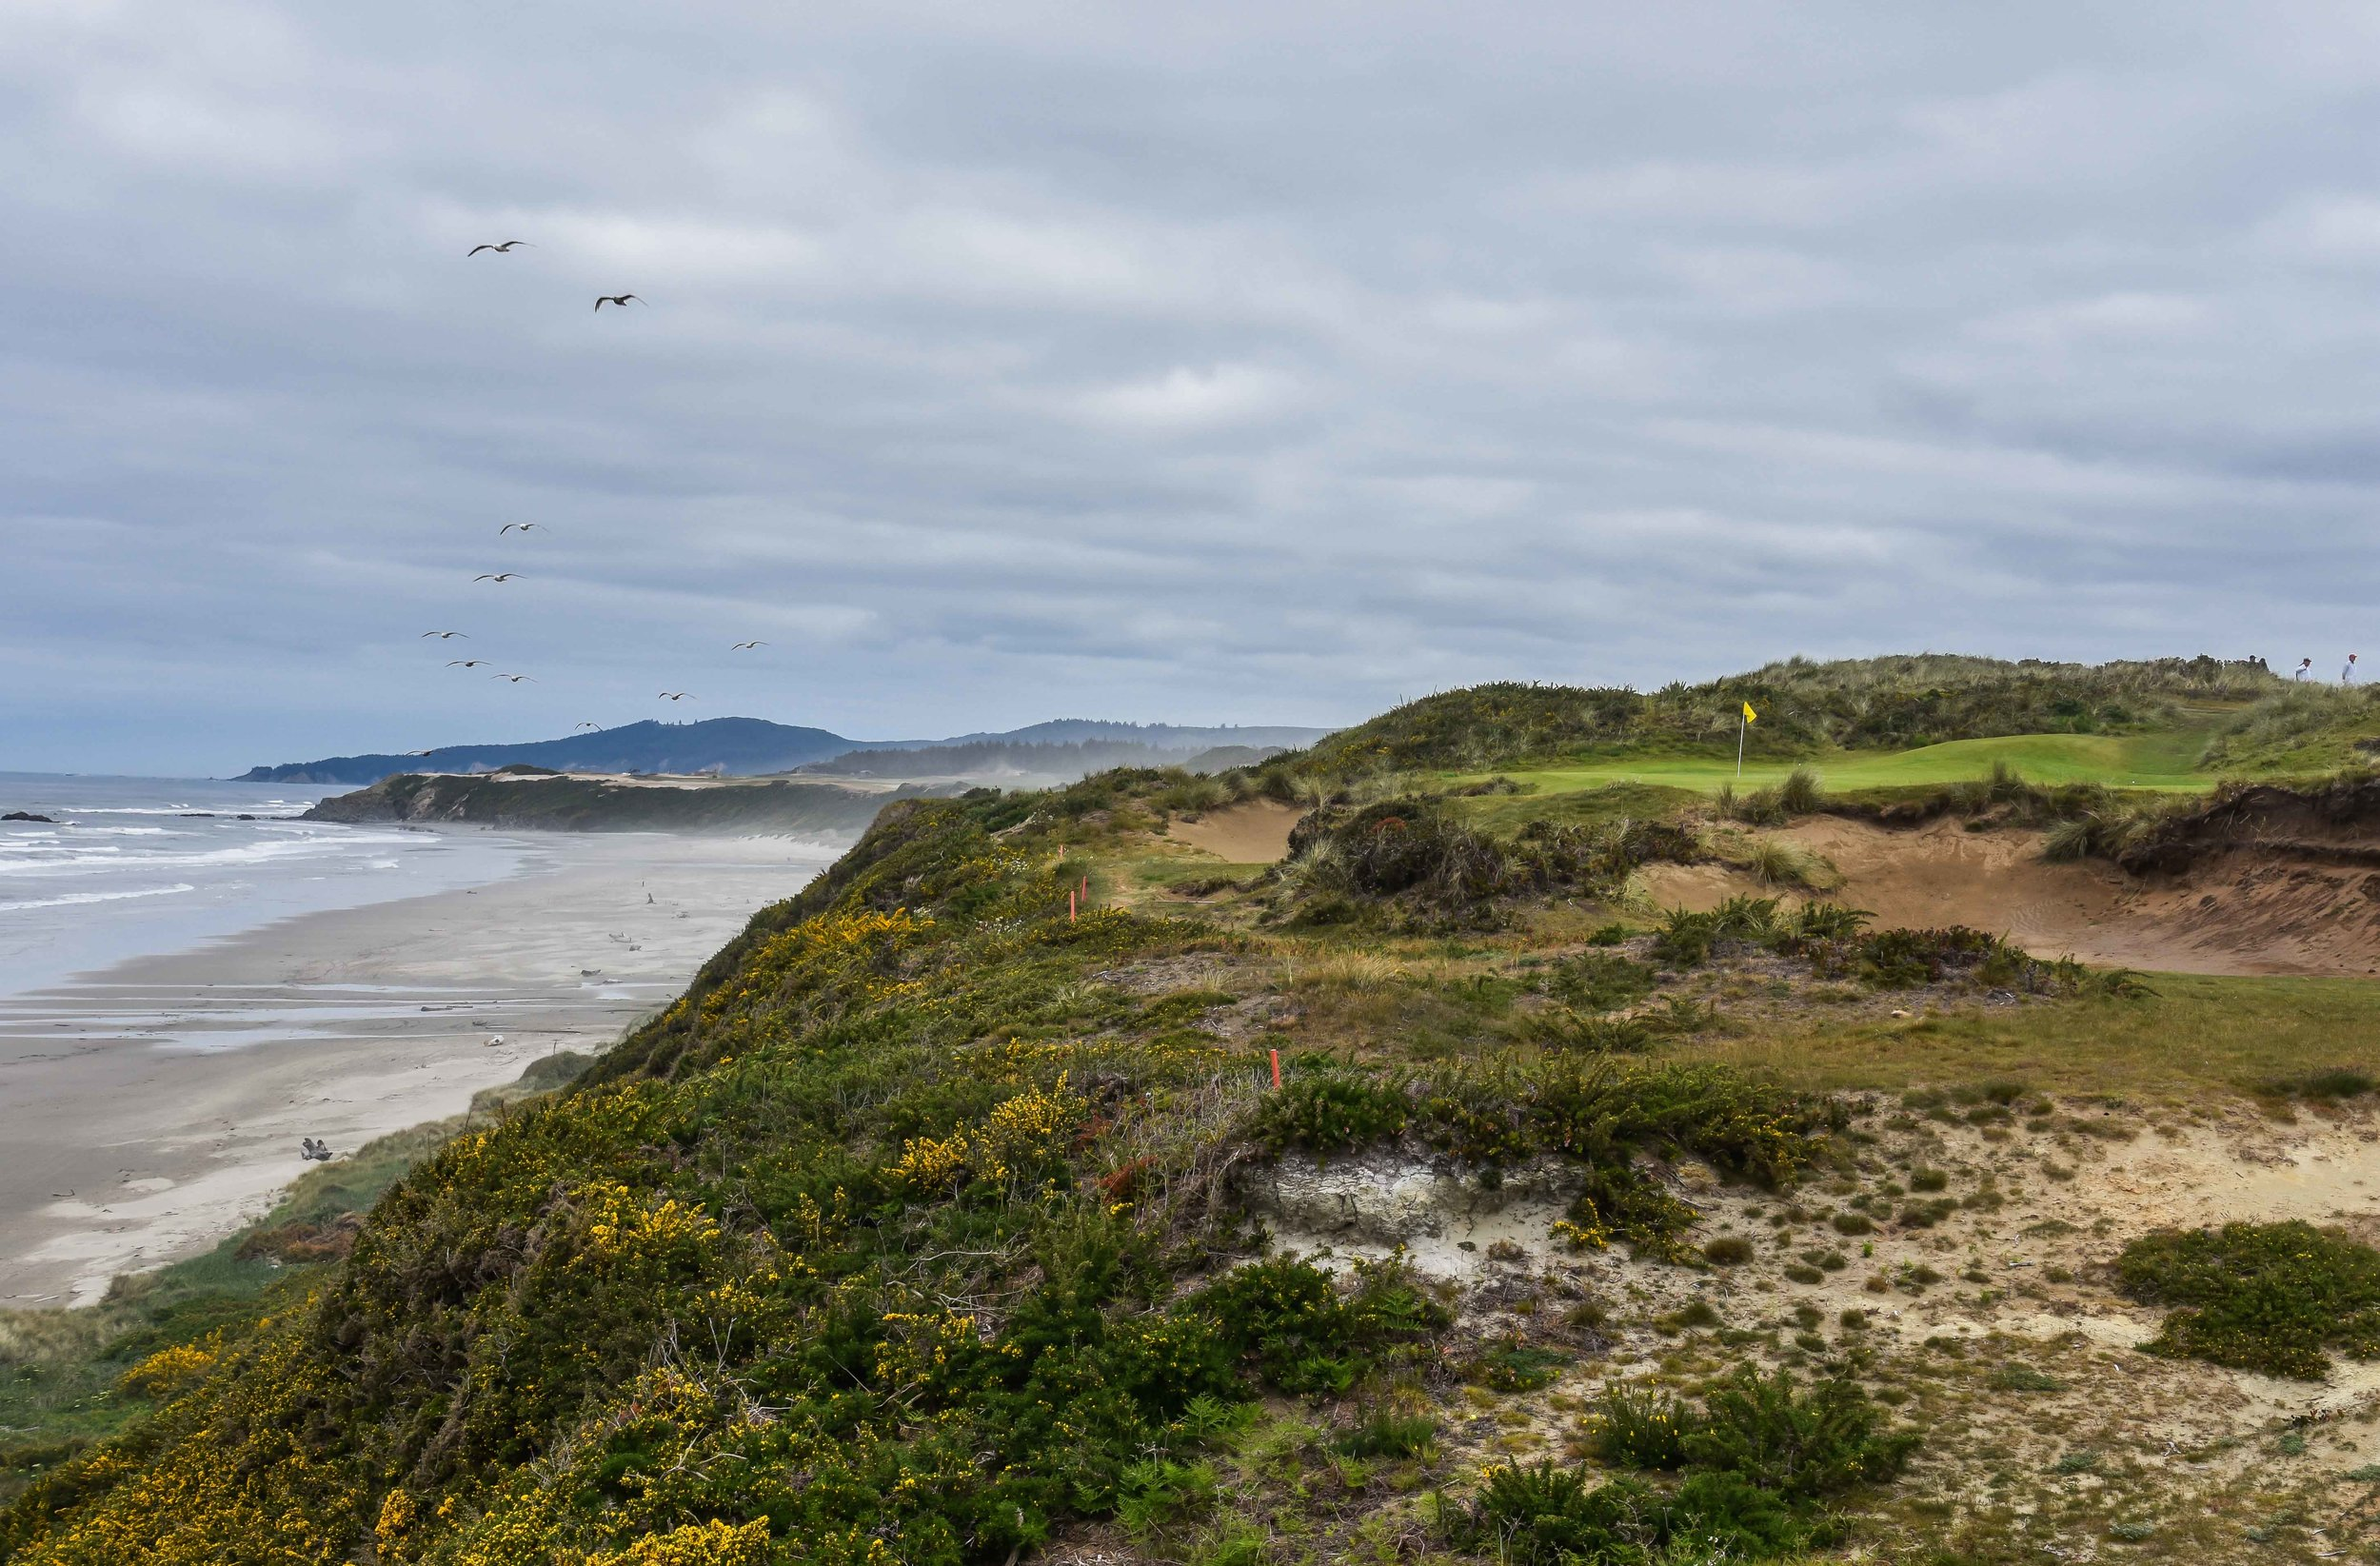 the 11th hole at Pacific Dunes is a popular selection for favorite golf hole at Bandon.